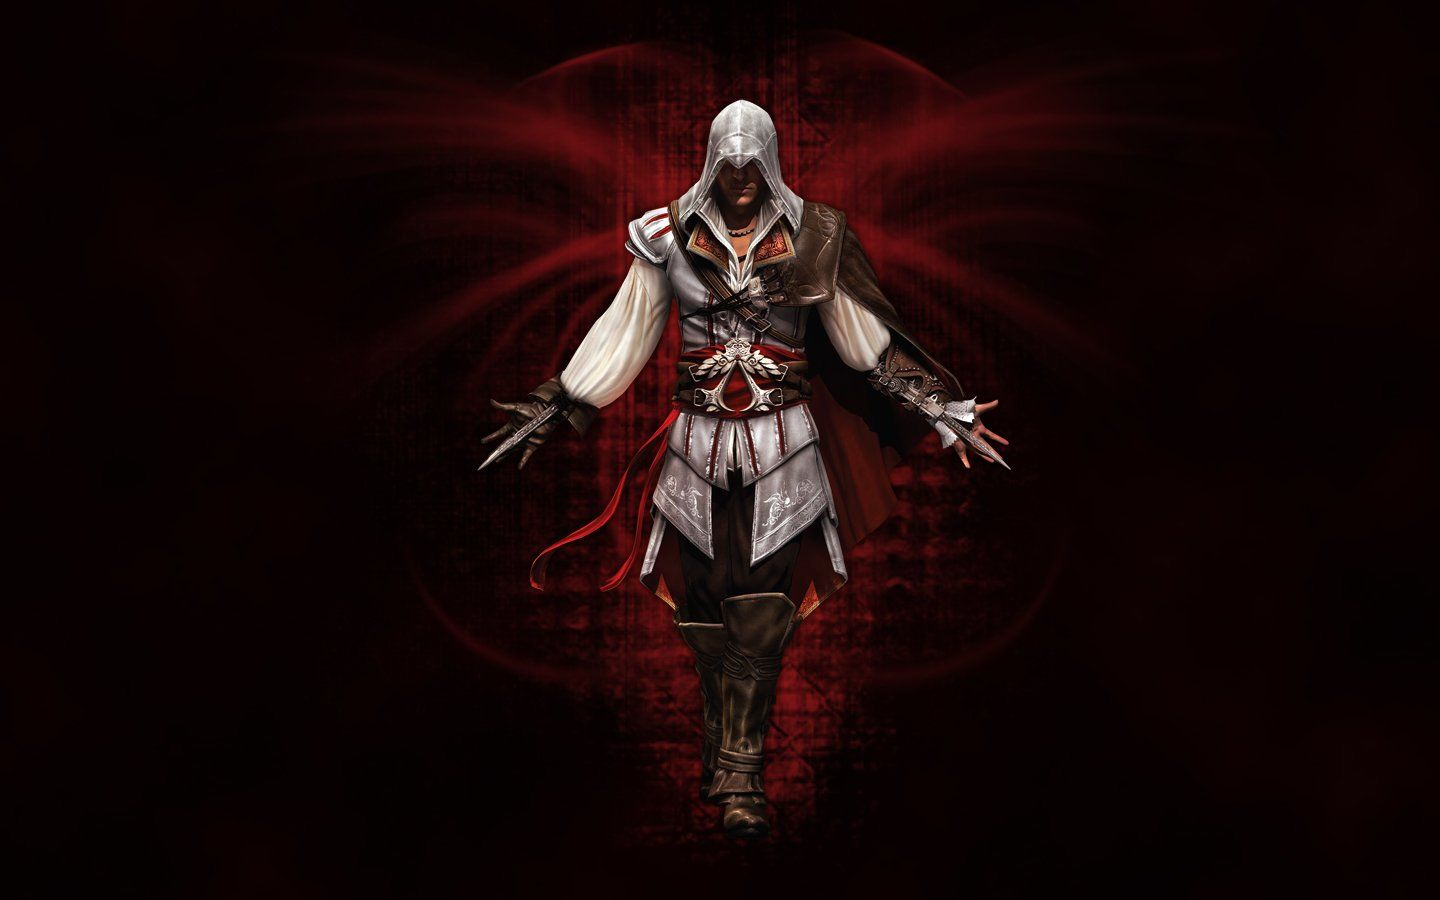 Ninja Assassin Creed Wallpapers Top Free Ninja Assassin Creed